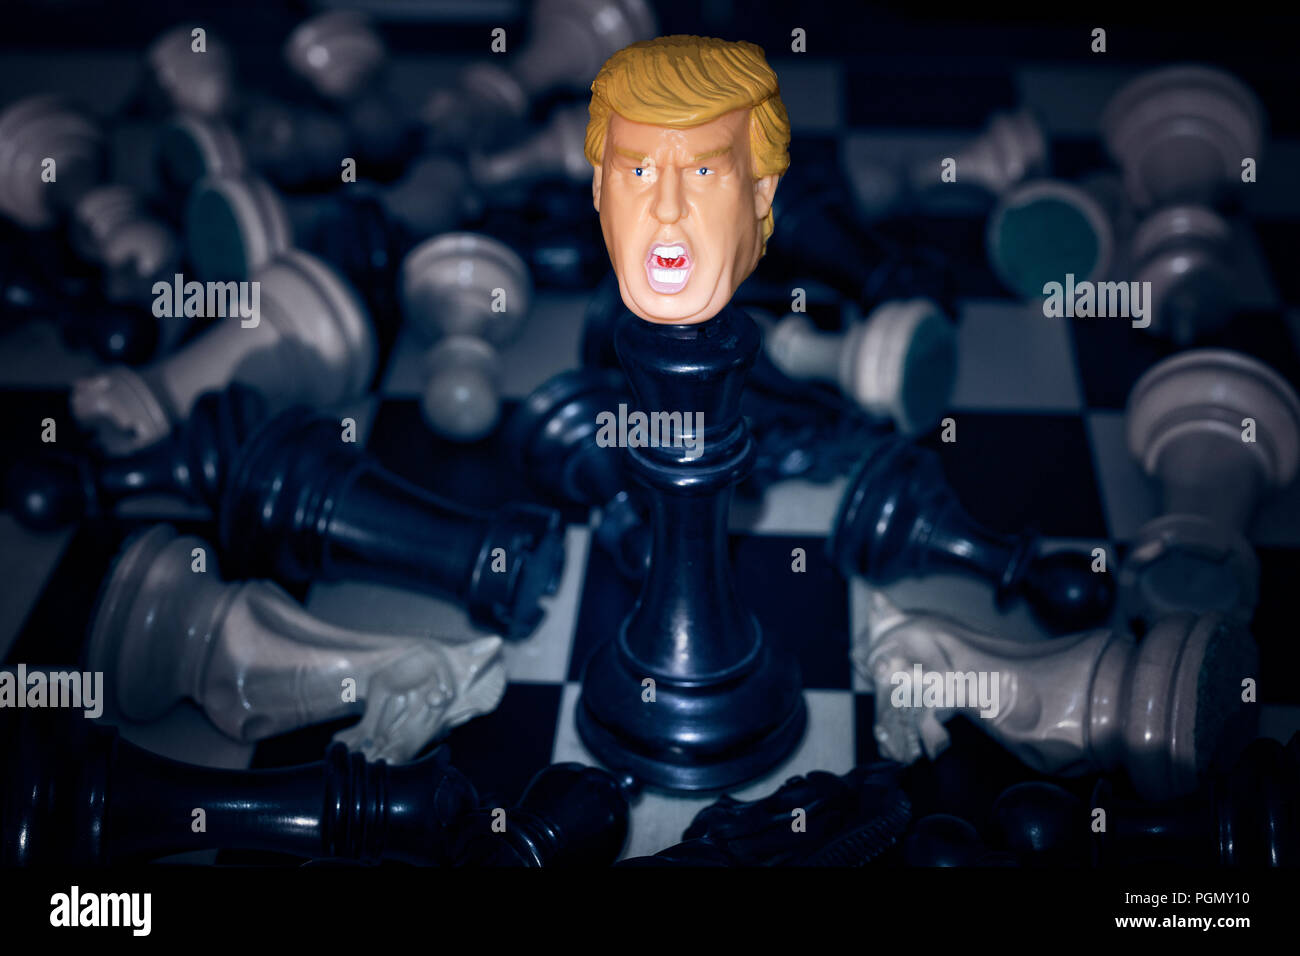 President Donald Trump standing on chessboard. Scattered chess pieces around. Stock Photo